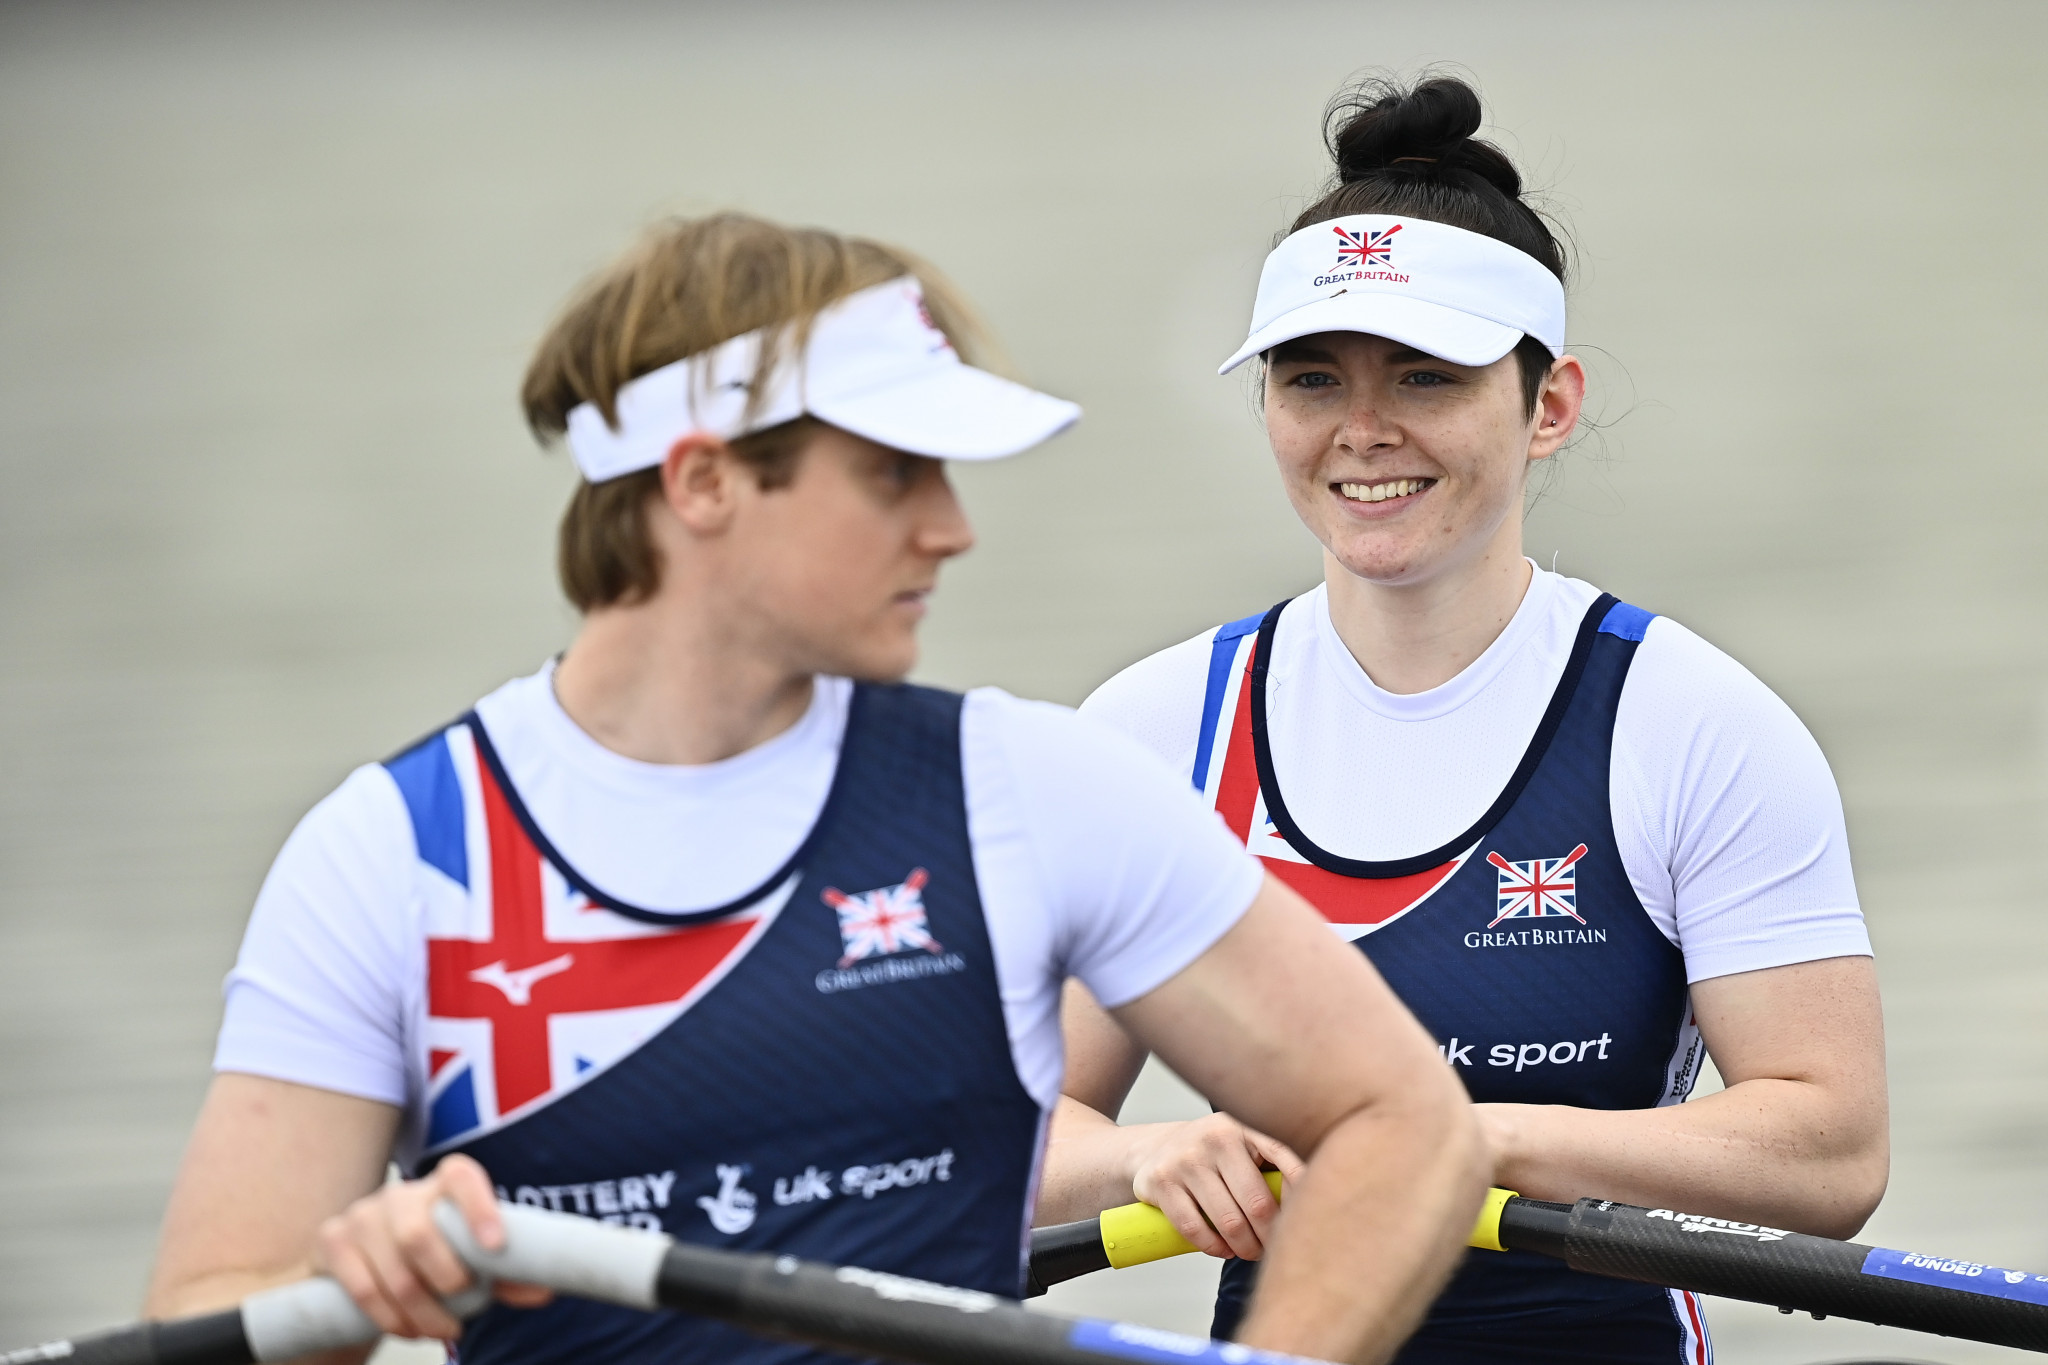 Polianskyi retains men's single sculls title and Britain win two rowing finals at Tokyo 2020 Paralympics